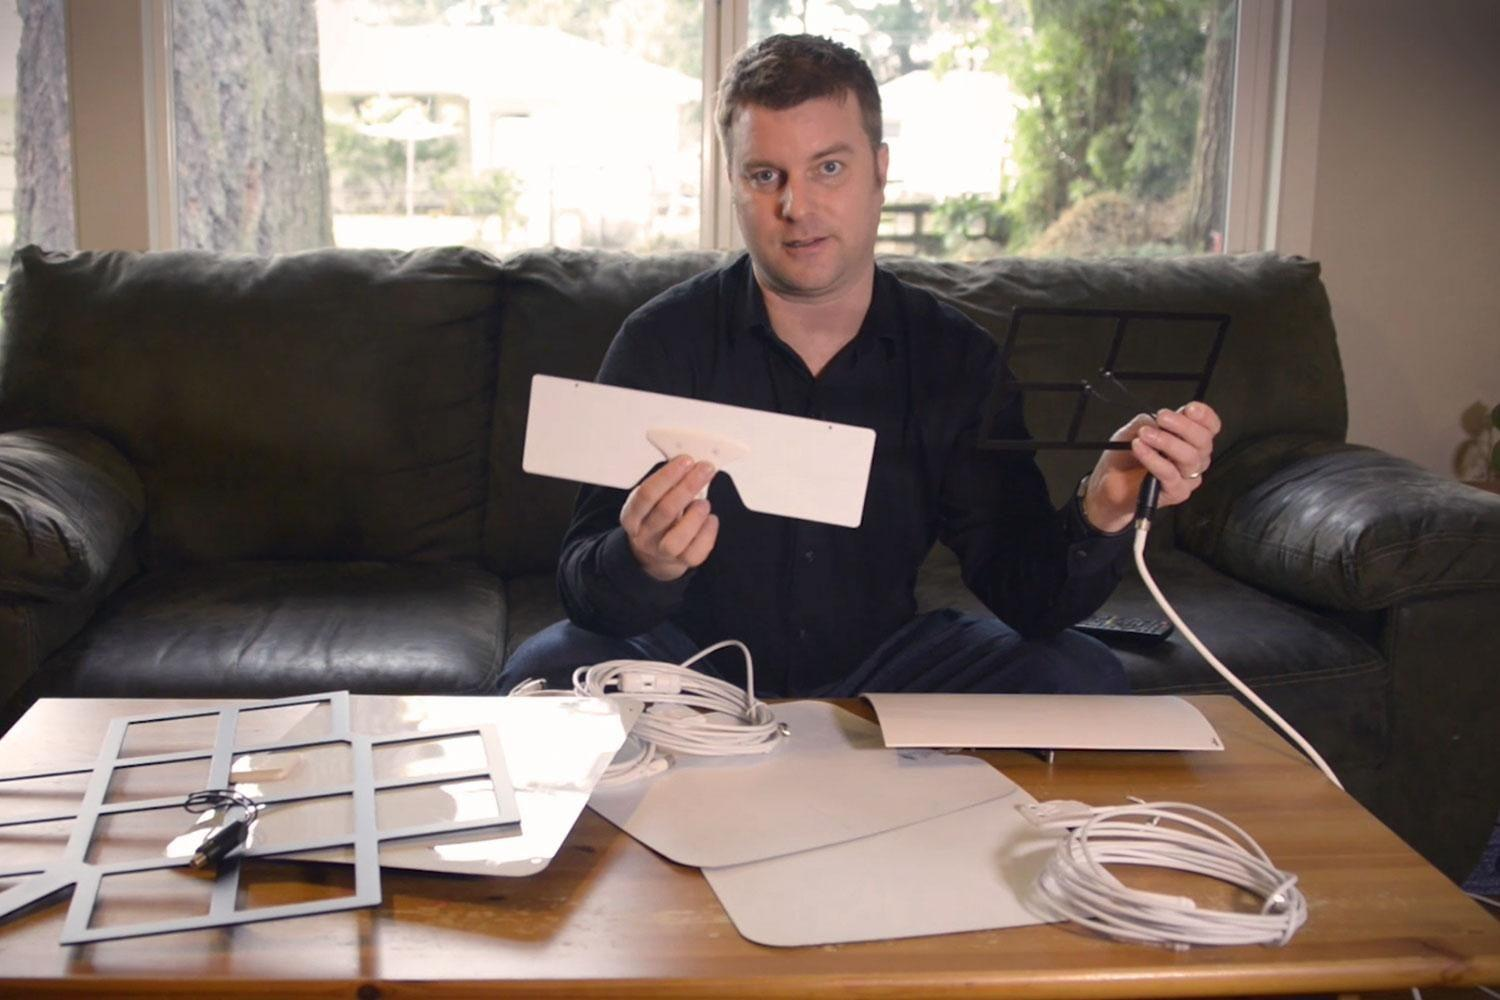 How to install an HD antenna for free TV